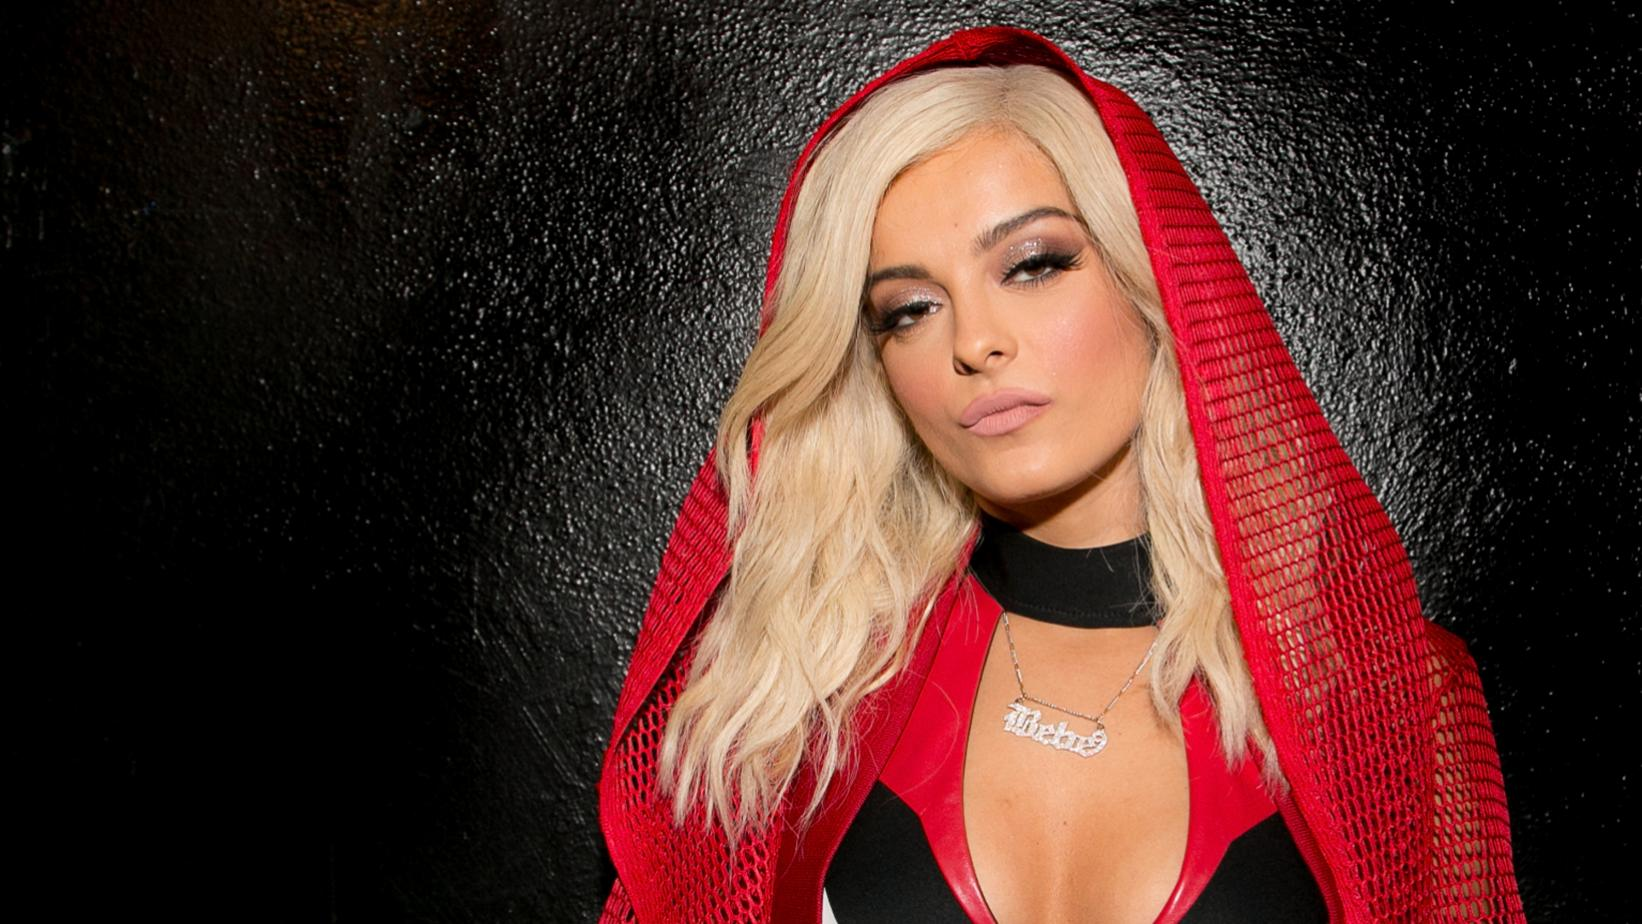 Photo of Bebe Rexha nega fazer parte da seita Illuminati